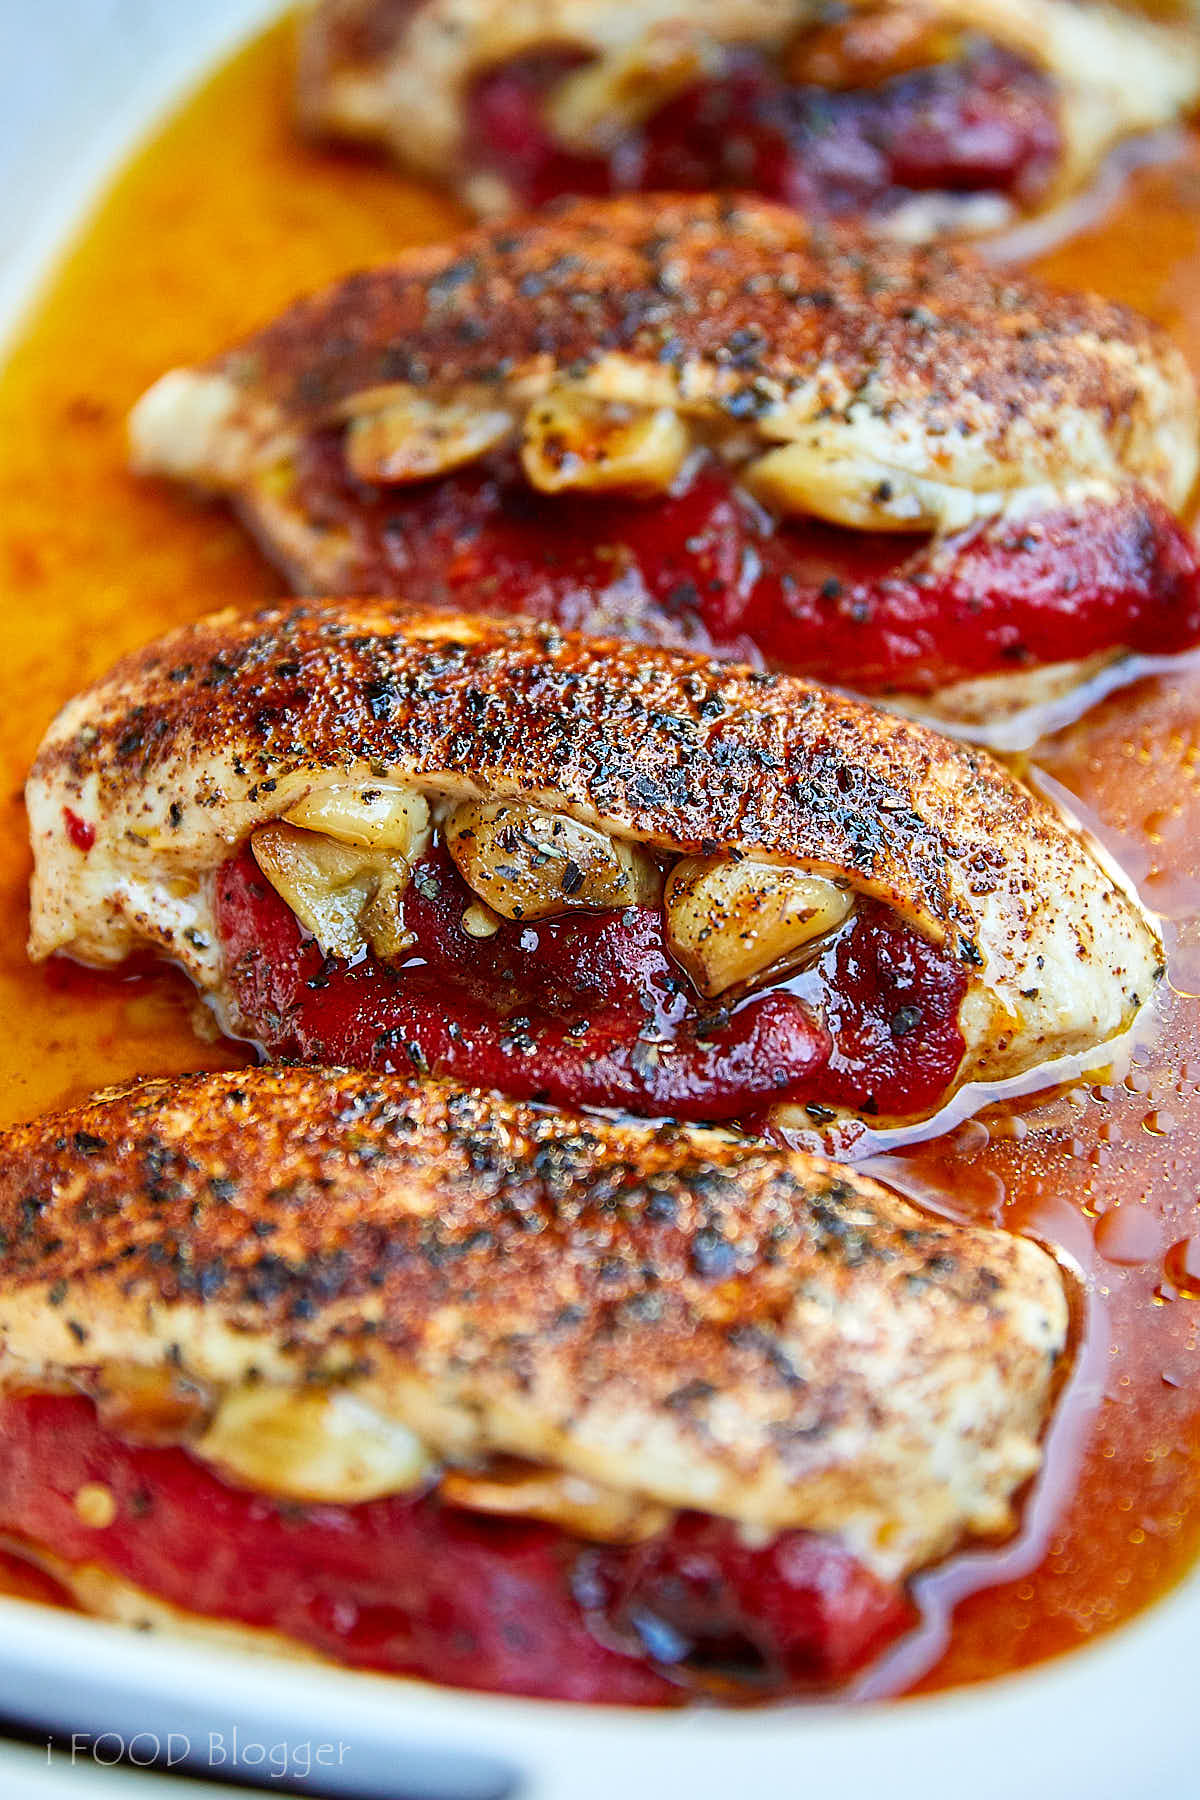 Stuffed baked chicken breasts in baking dish with pan juices on the bottom.